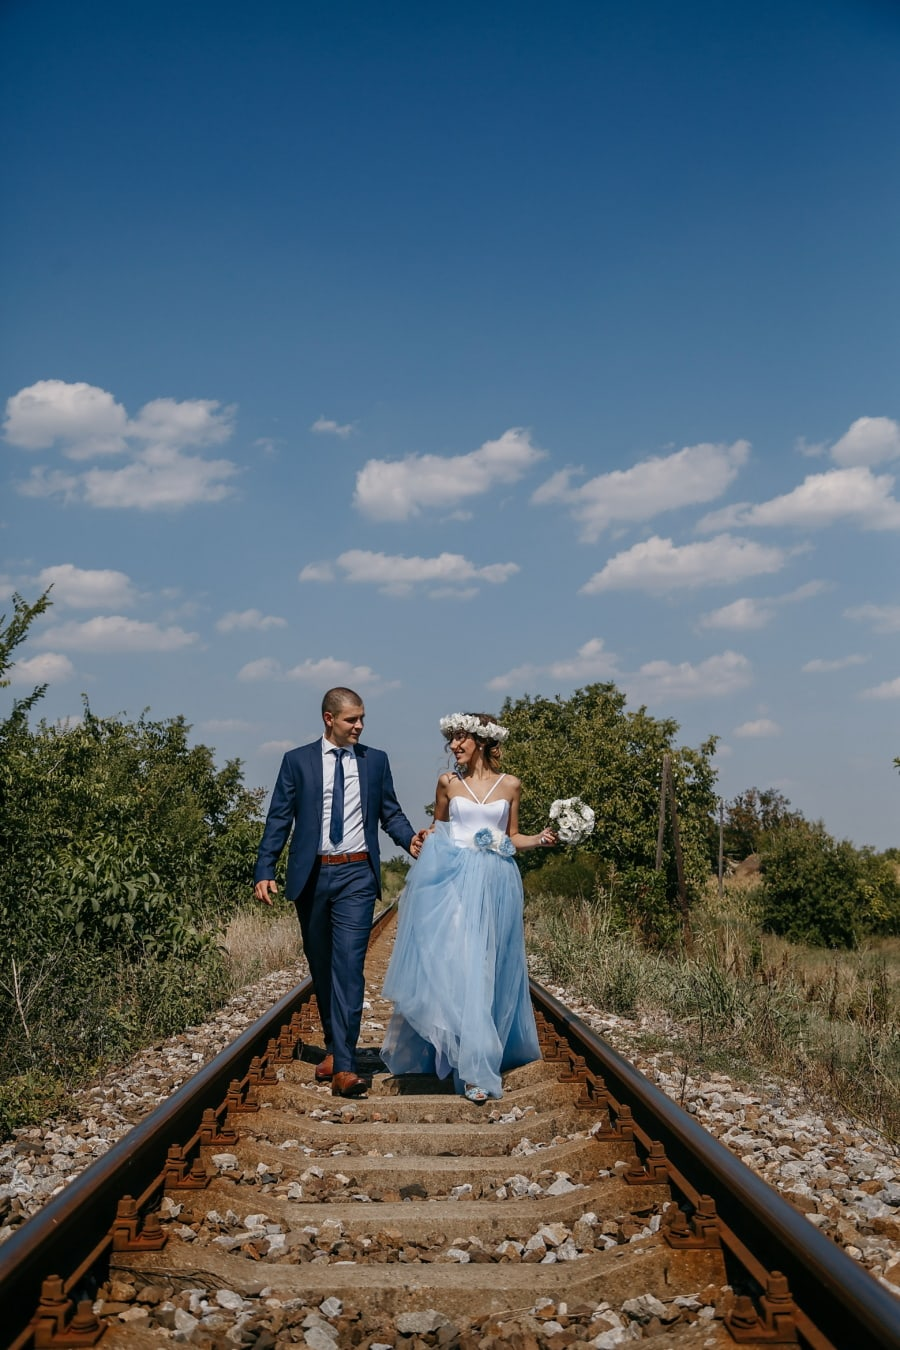 countryside, romantic, love, railroad, just married, track, wedding, girl, nature, woman